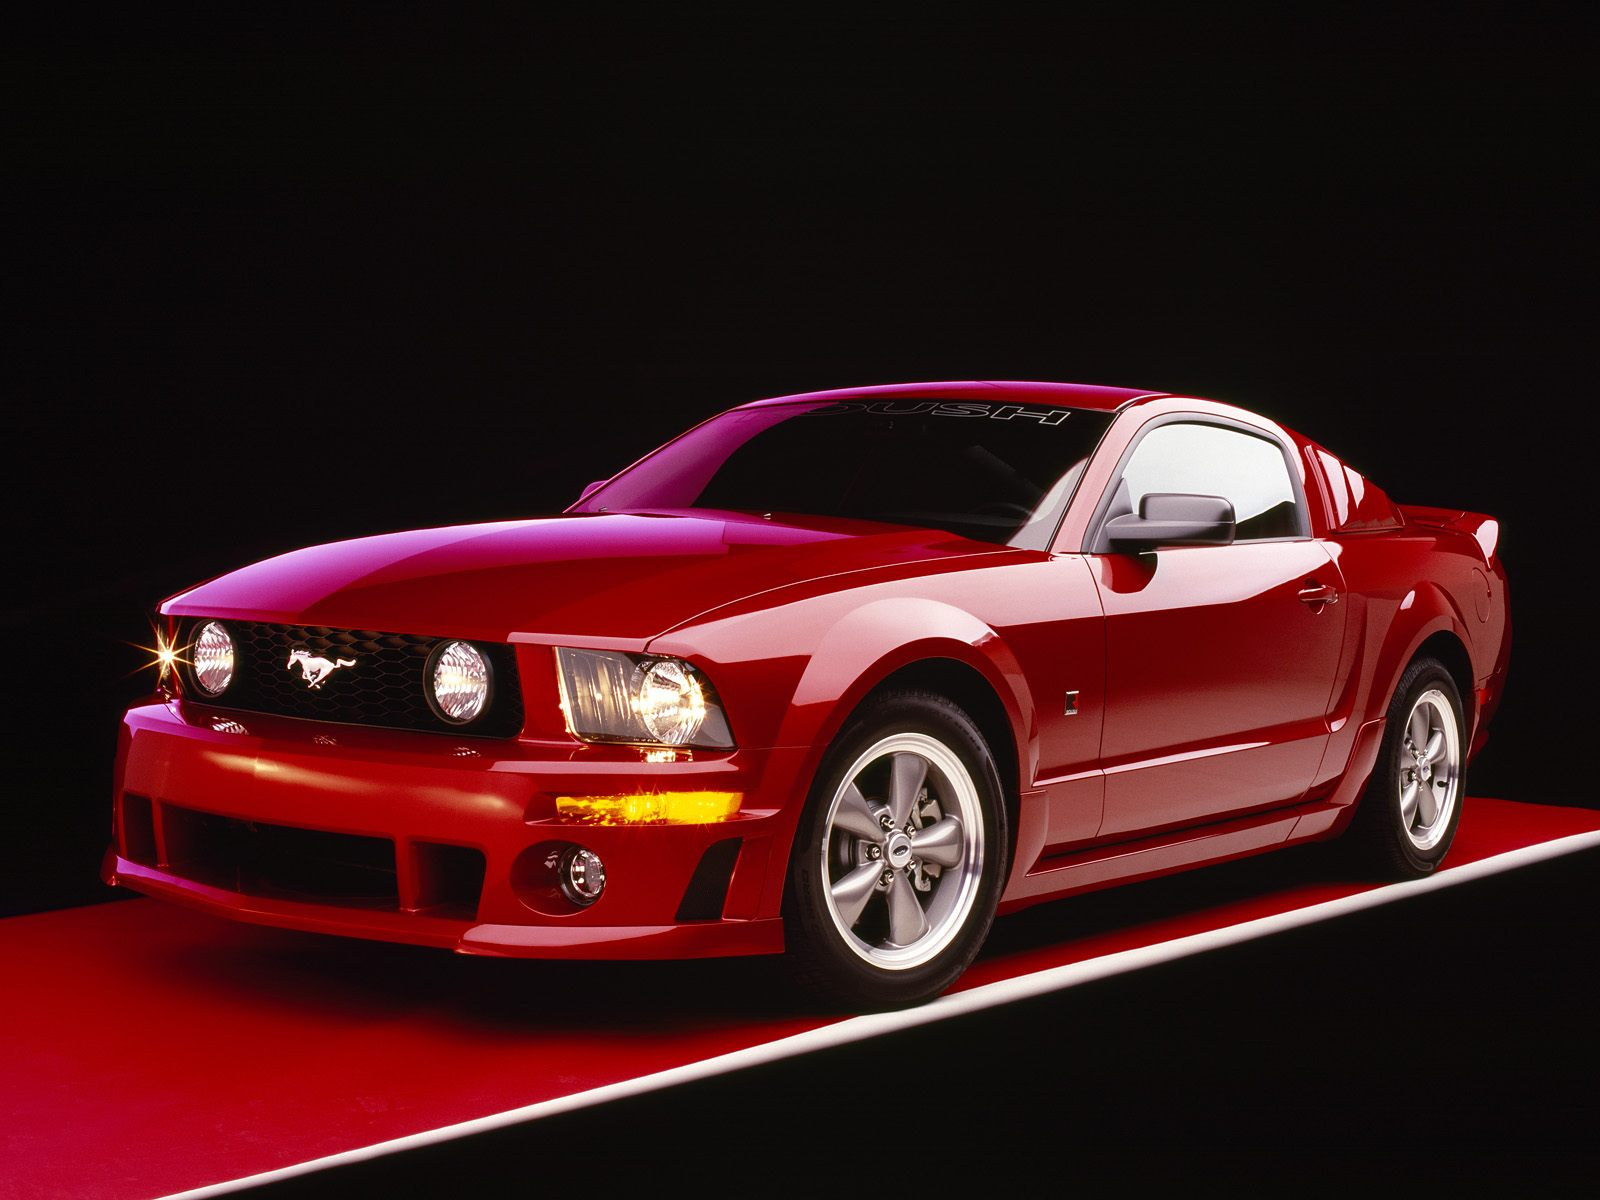 Cars Wallpaper 152 Wallpapers Desktop Wallpapers HD 1600x1200